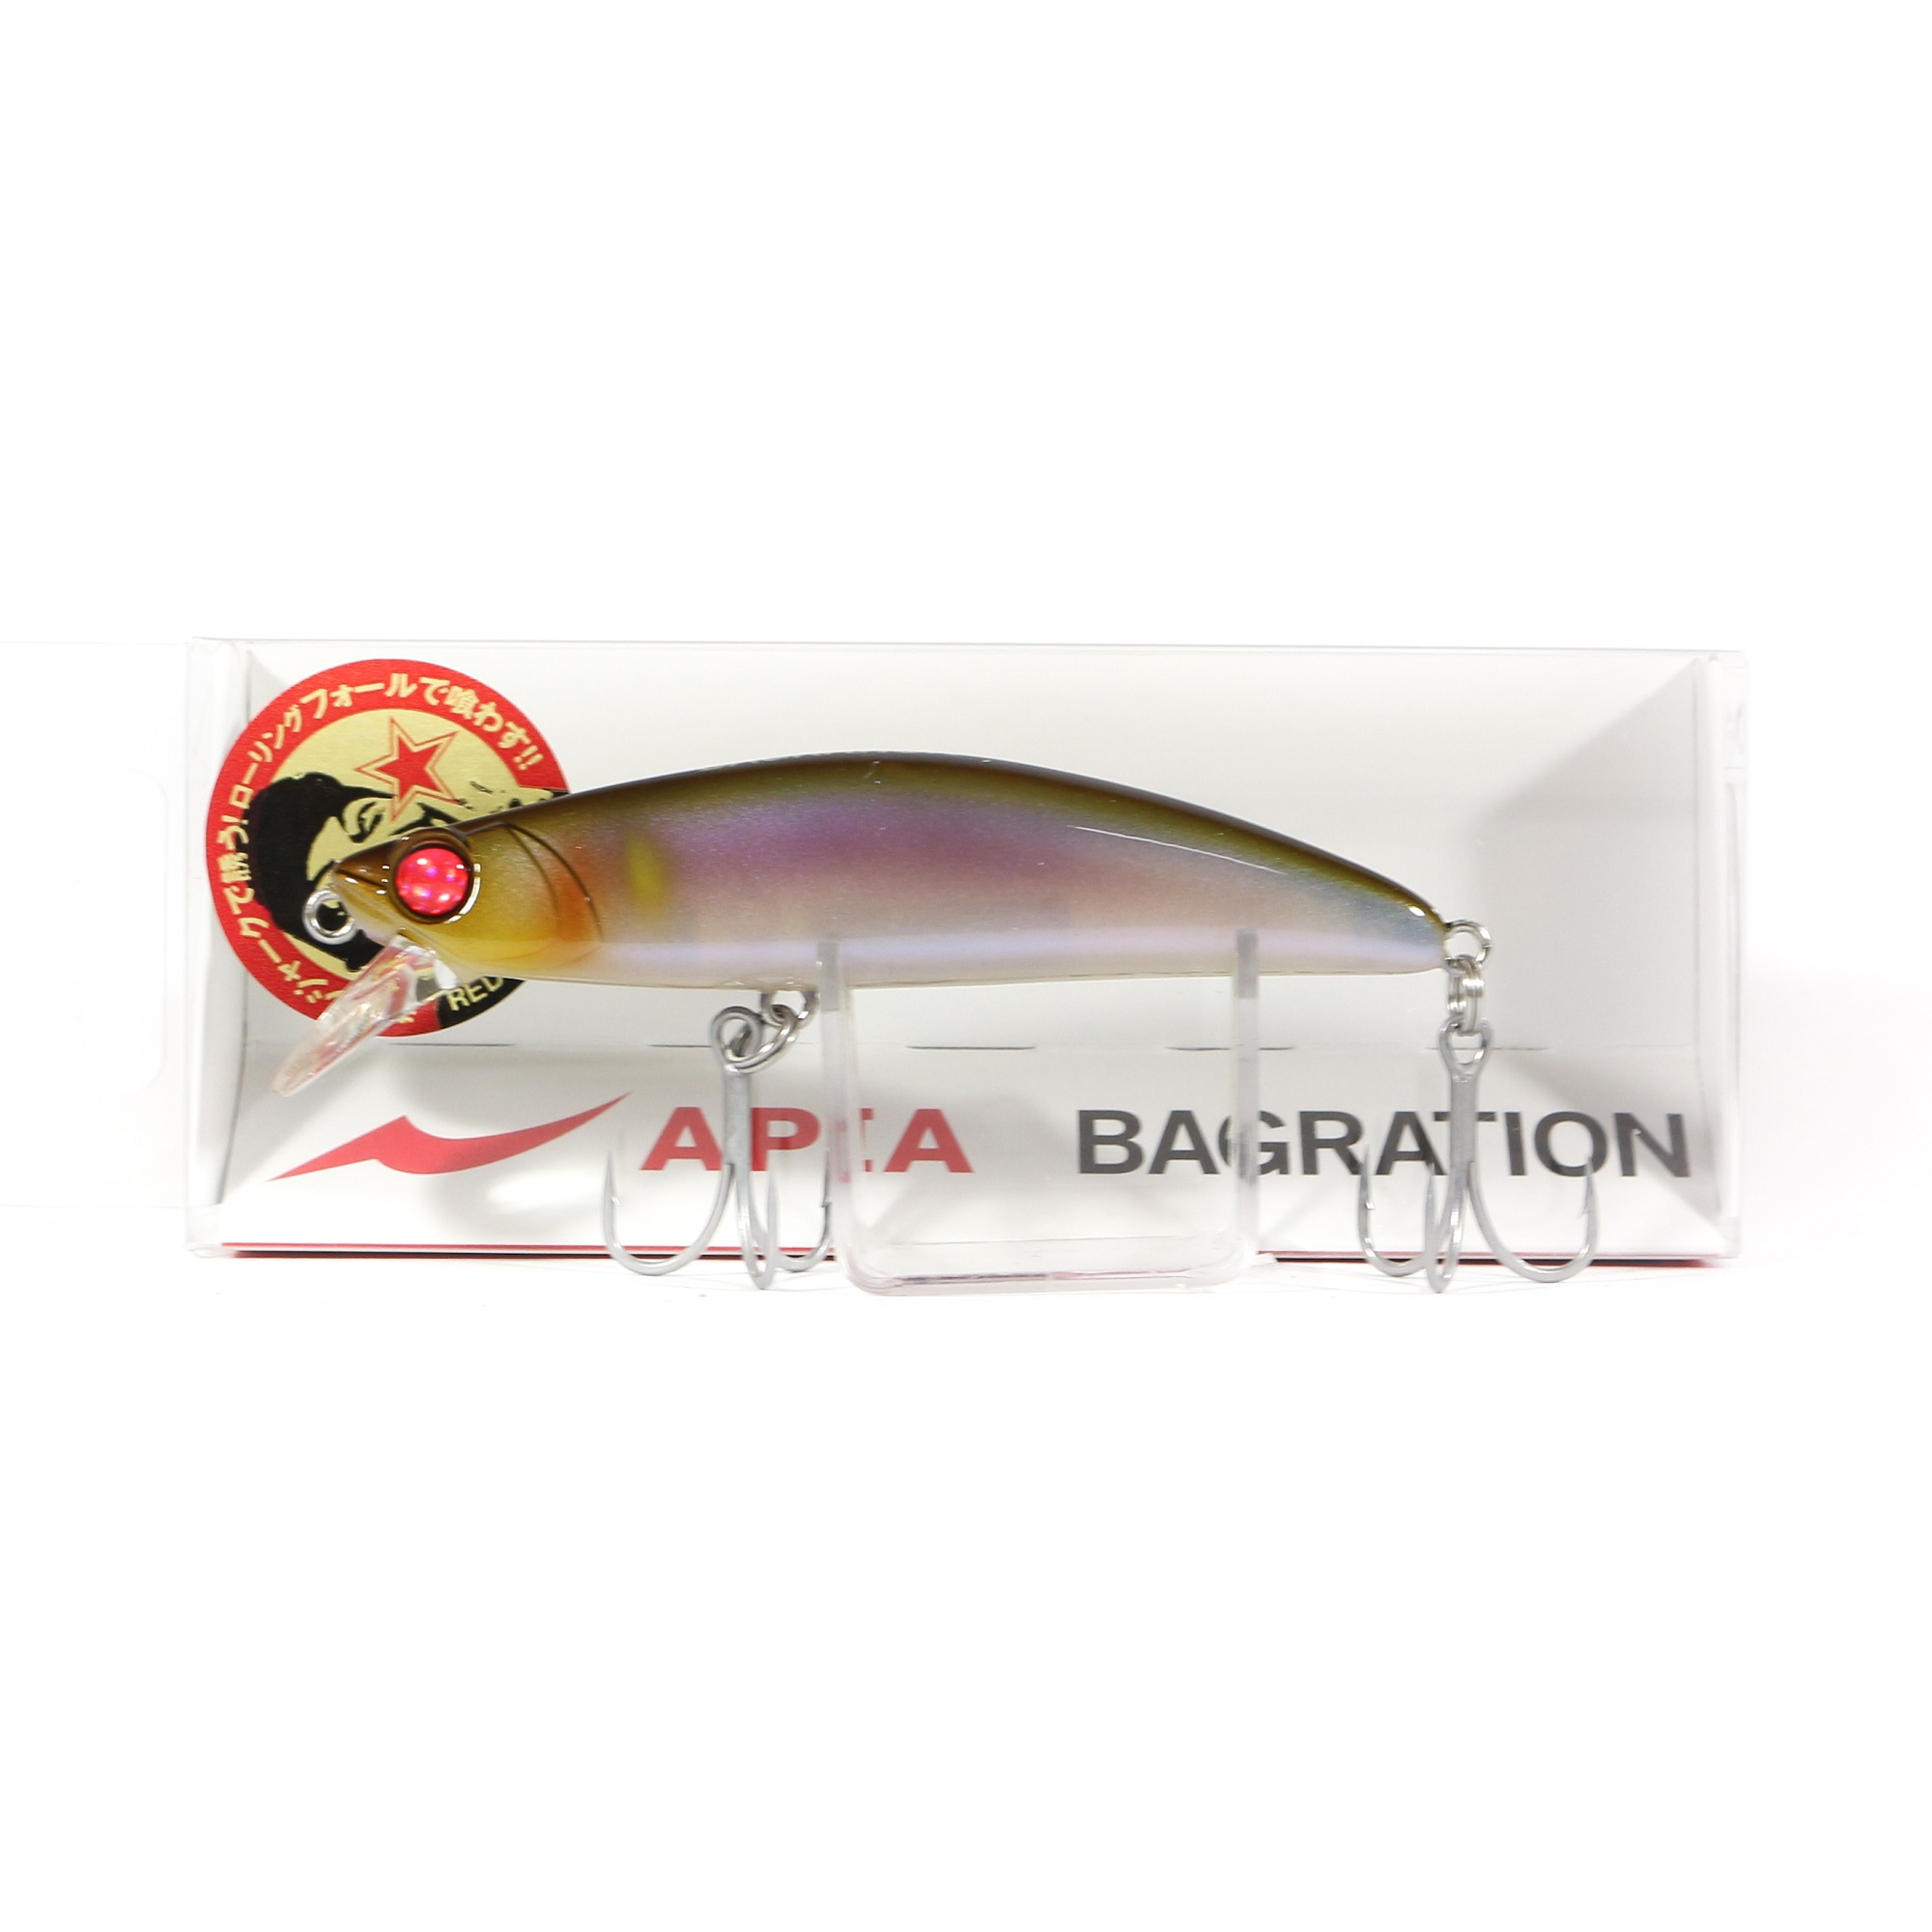 Apia Bagration 80 Sinking Lure 14 (6692)